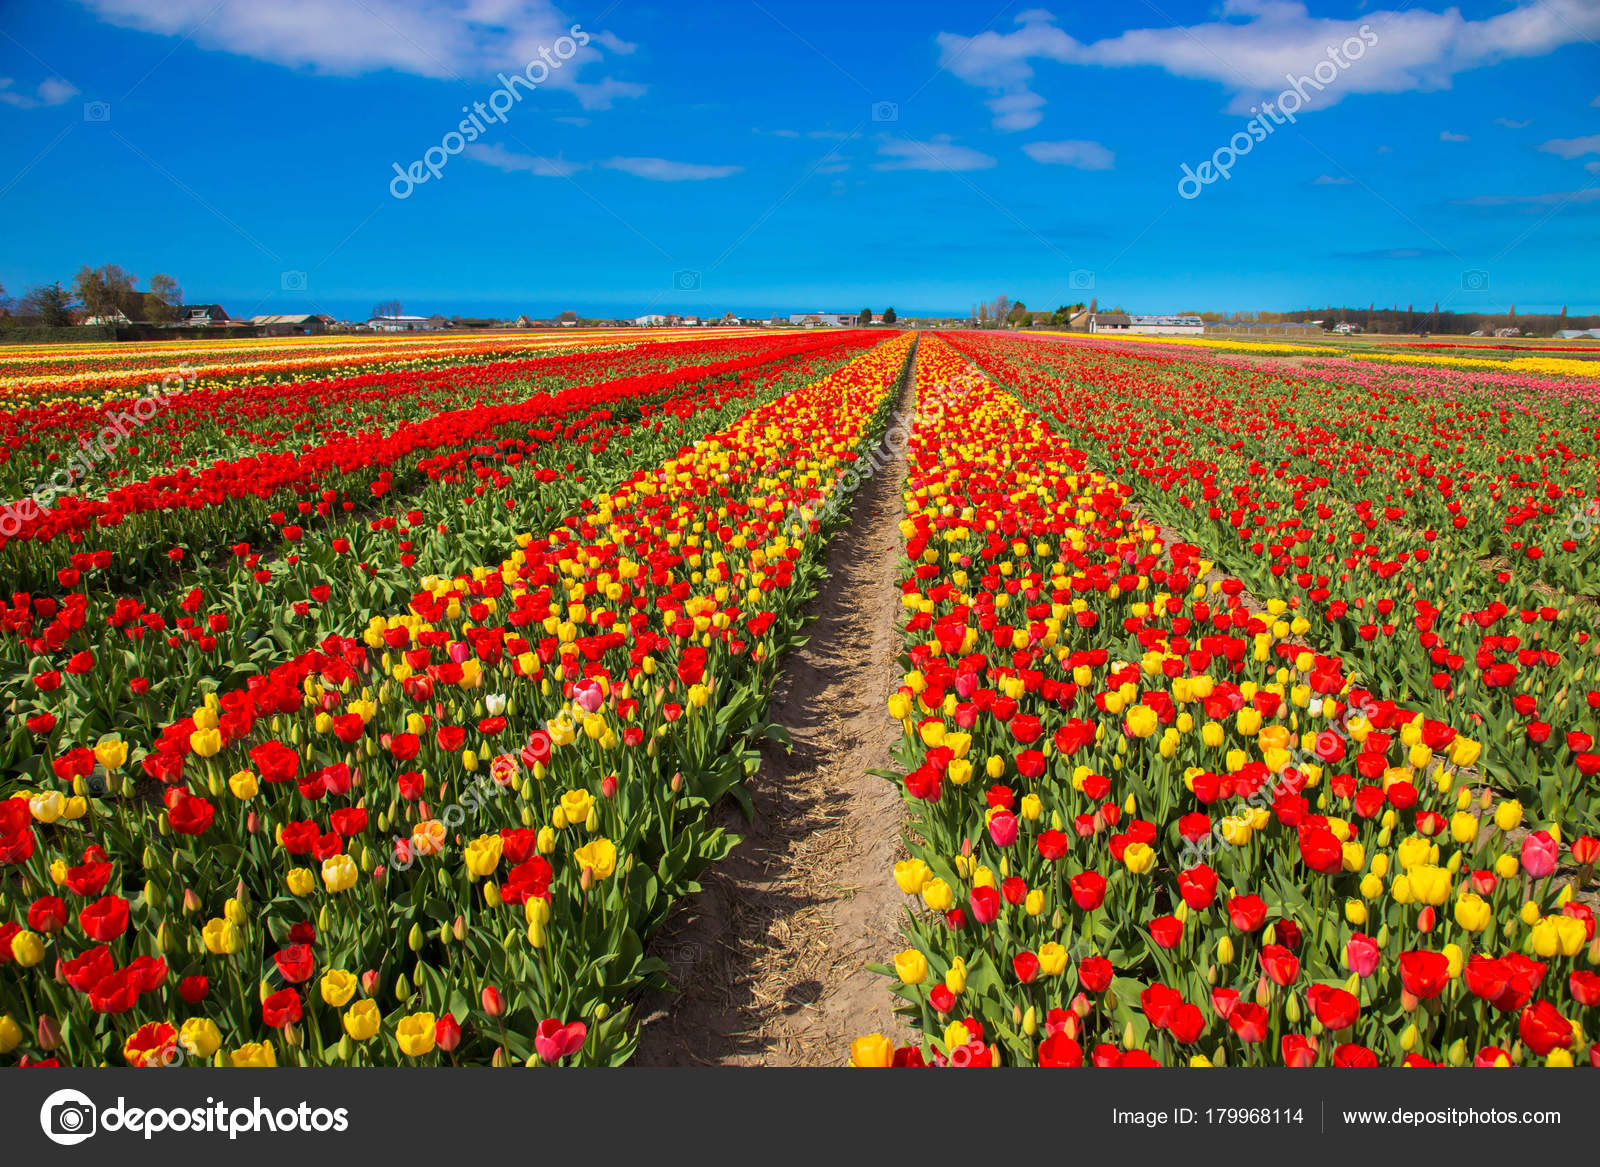 Πες μας τα όλα με μια φωτό... - Σελίδα 5 Depositphotos_179968114-stock-photo-spring-blooming-tulip-field-spring